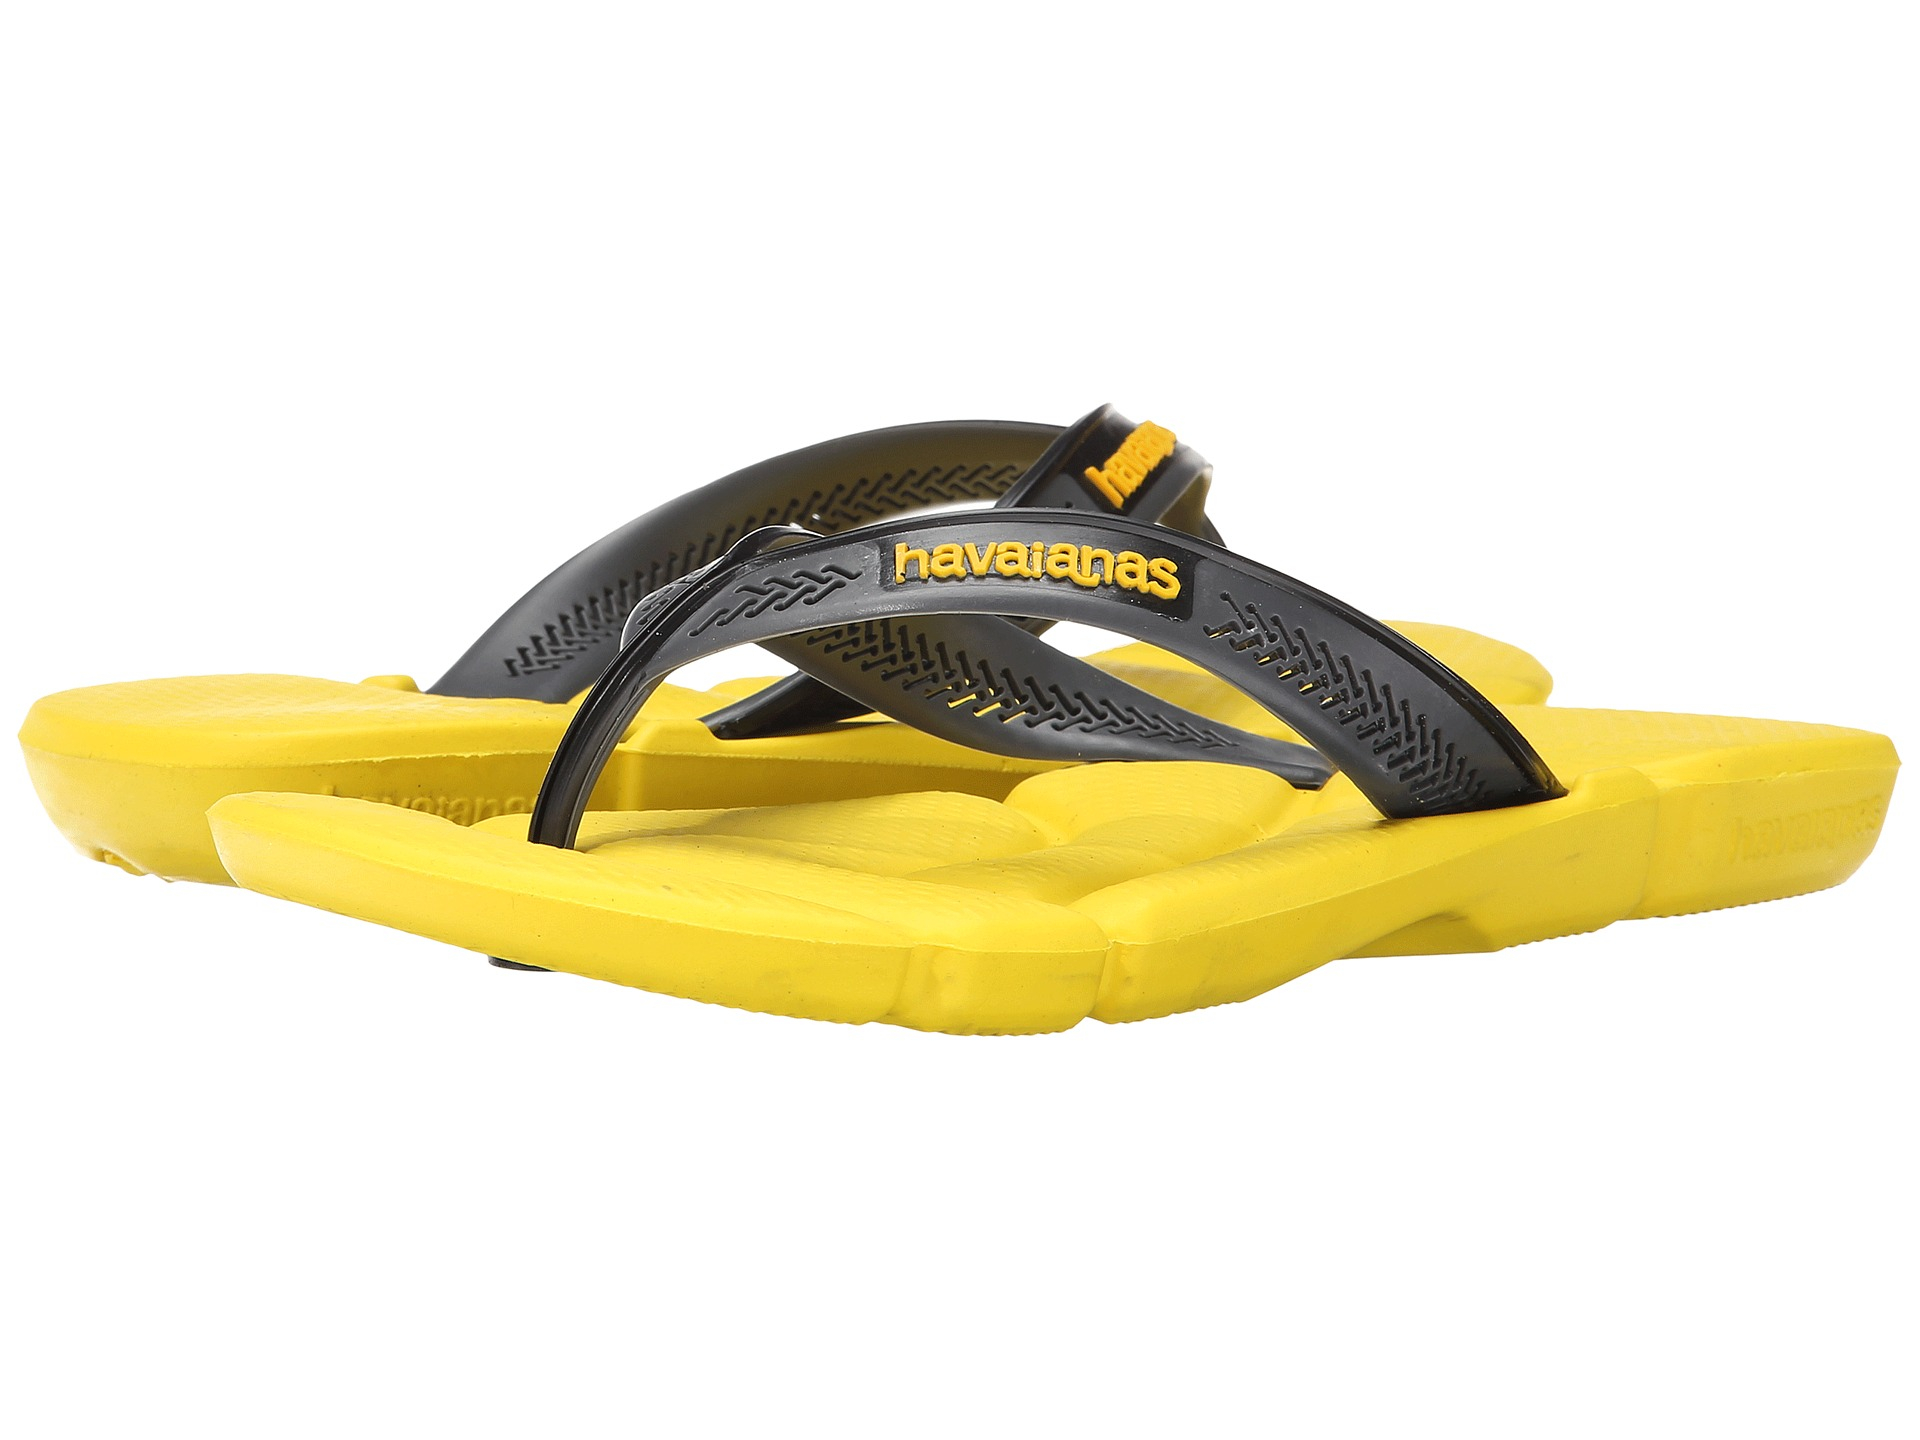 4408bcb353a Lyst - Havaianas Power Flip Flops in Yellow for Men